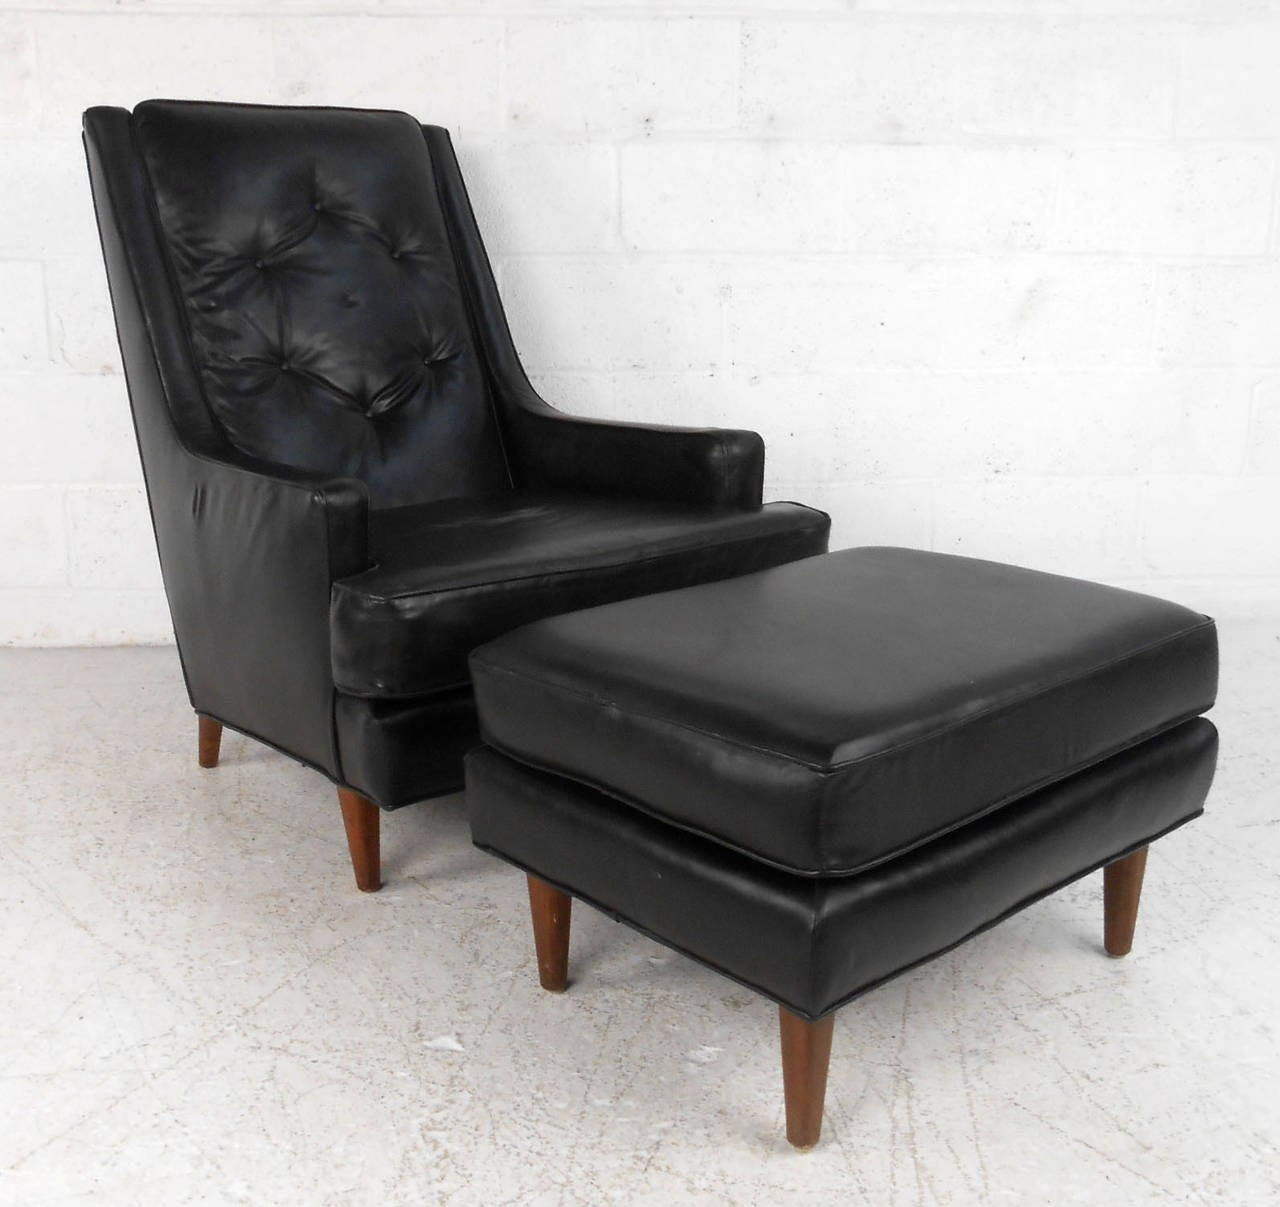 Mid Century Chair And Ottoman Mid Century Modern Tufted Lounge Chair With Ottoman For